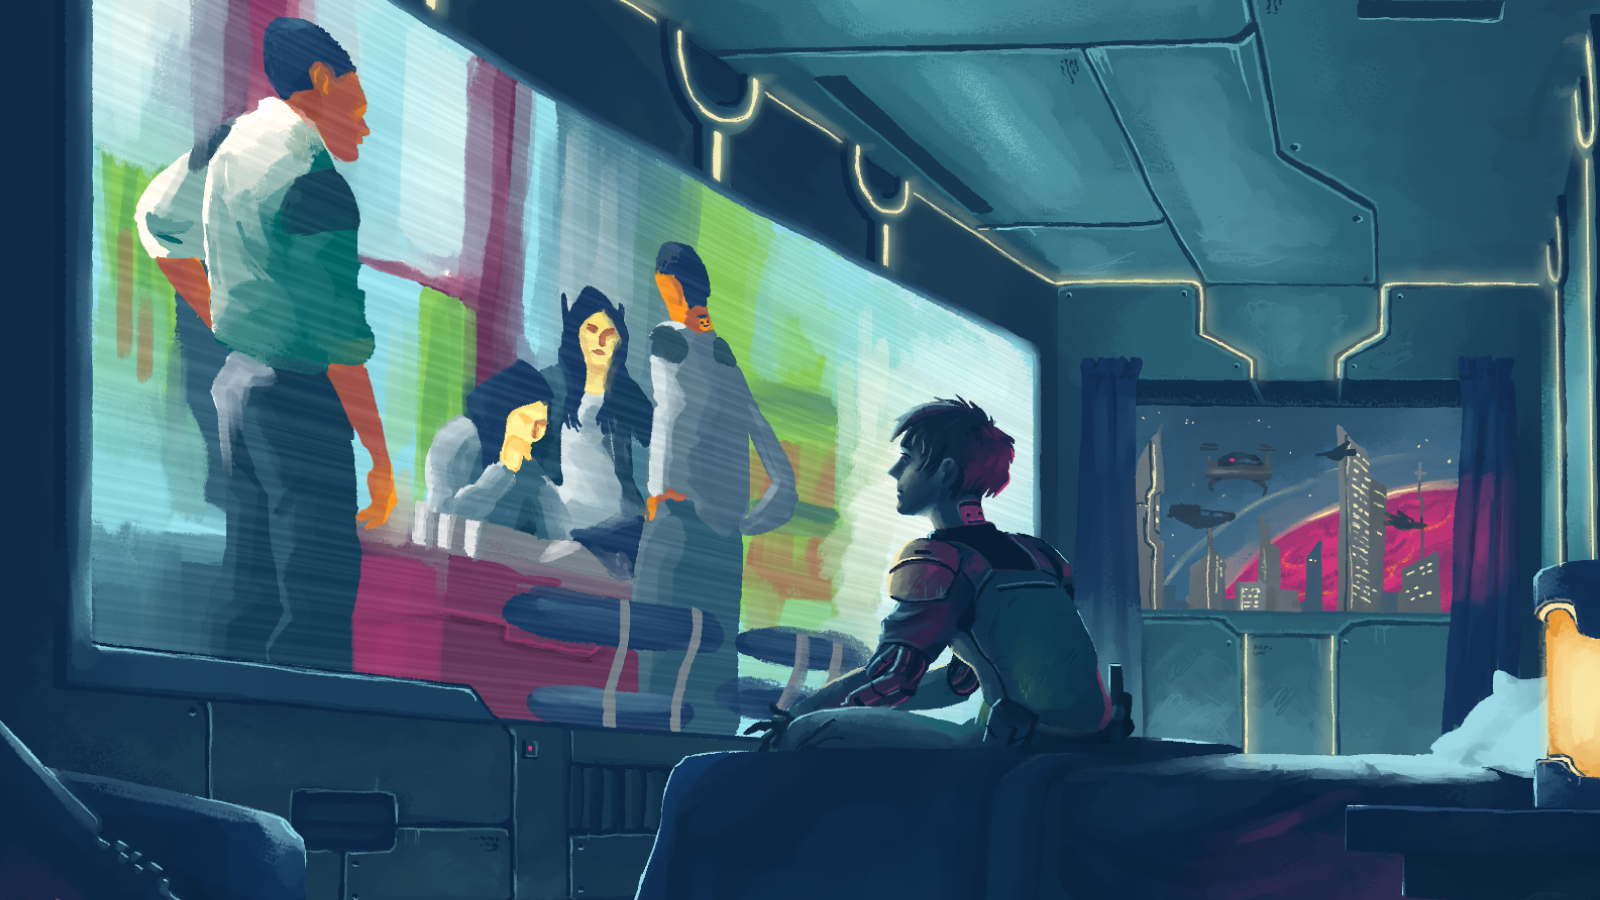 Illustration of cyborg watching TV show in bedroom.